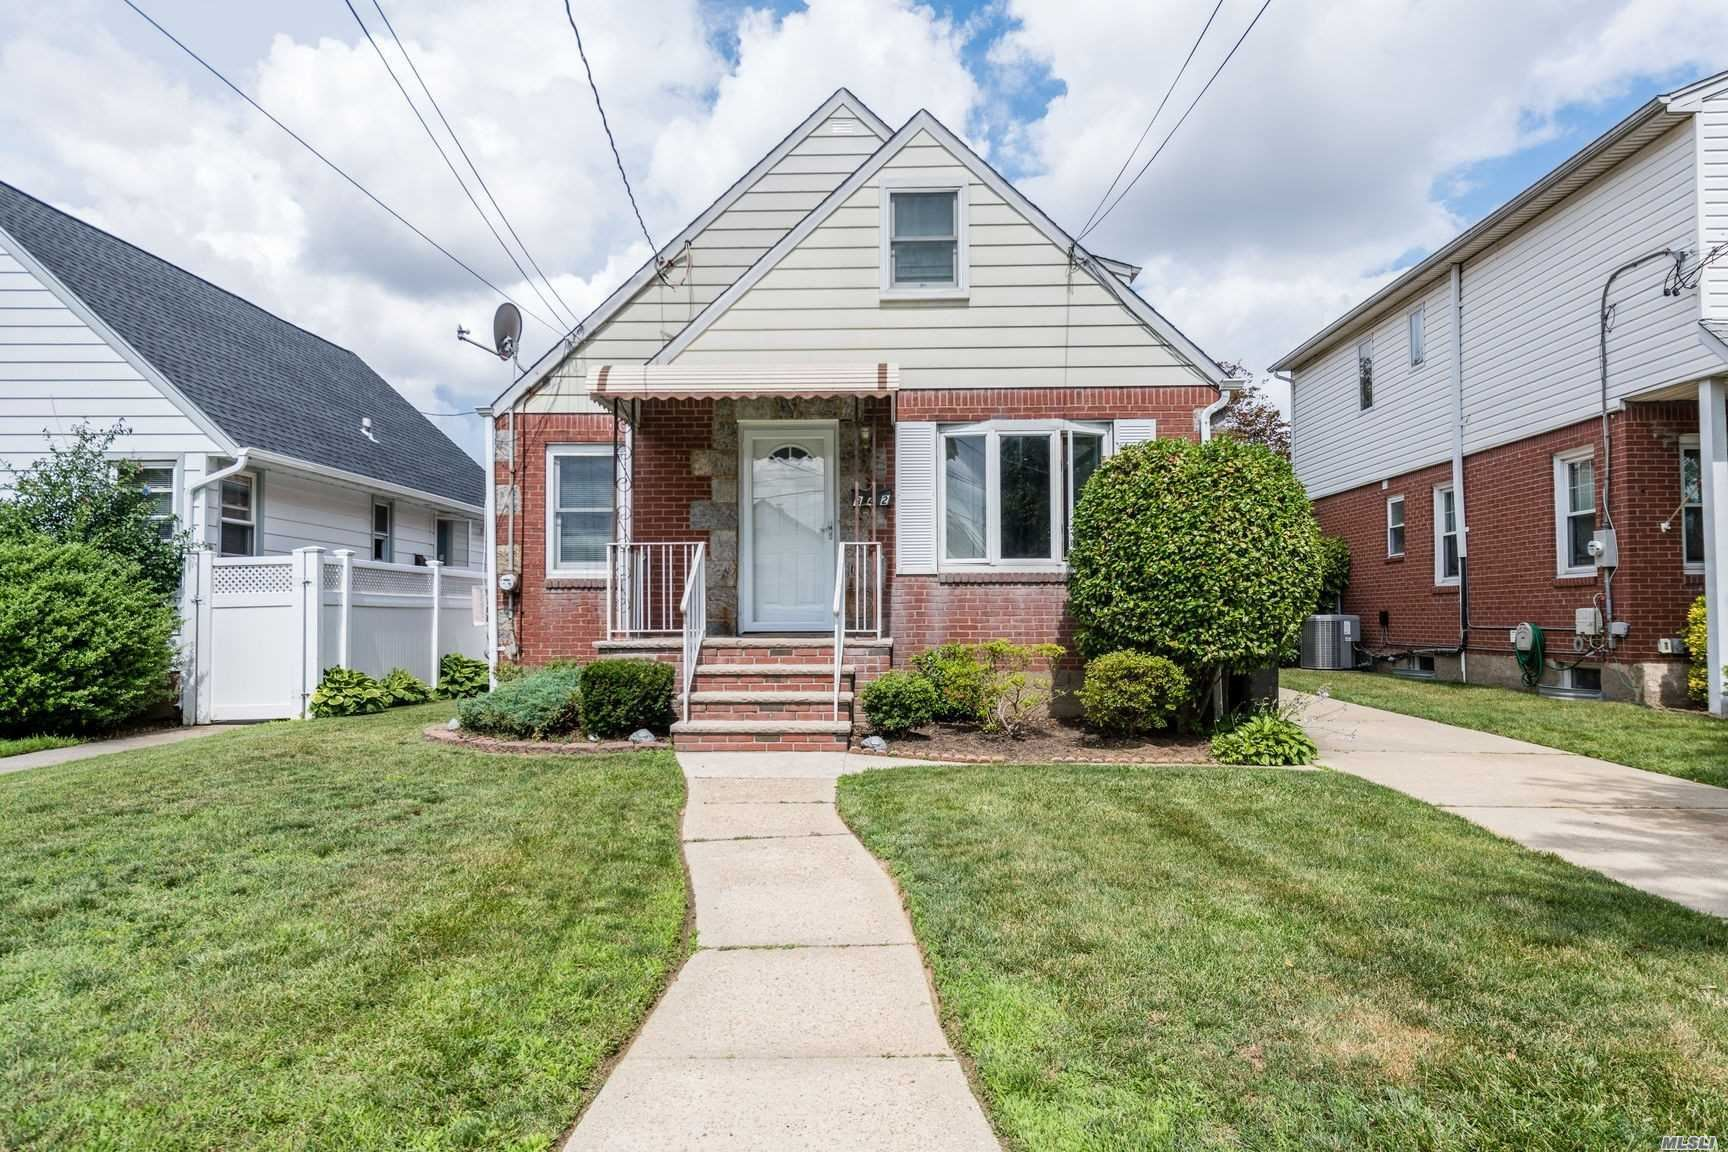 342 Harrison St, Franklin Square, NY 11010 - MLS#: 3228347